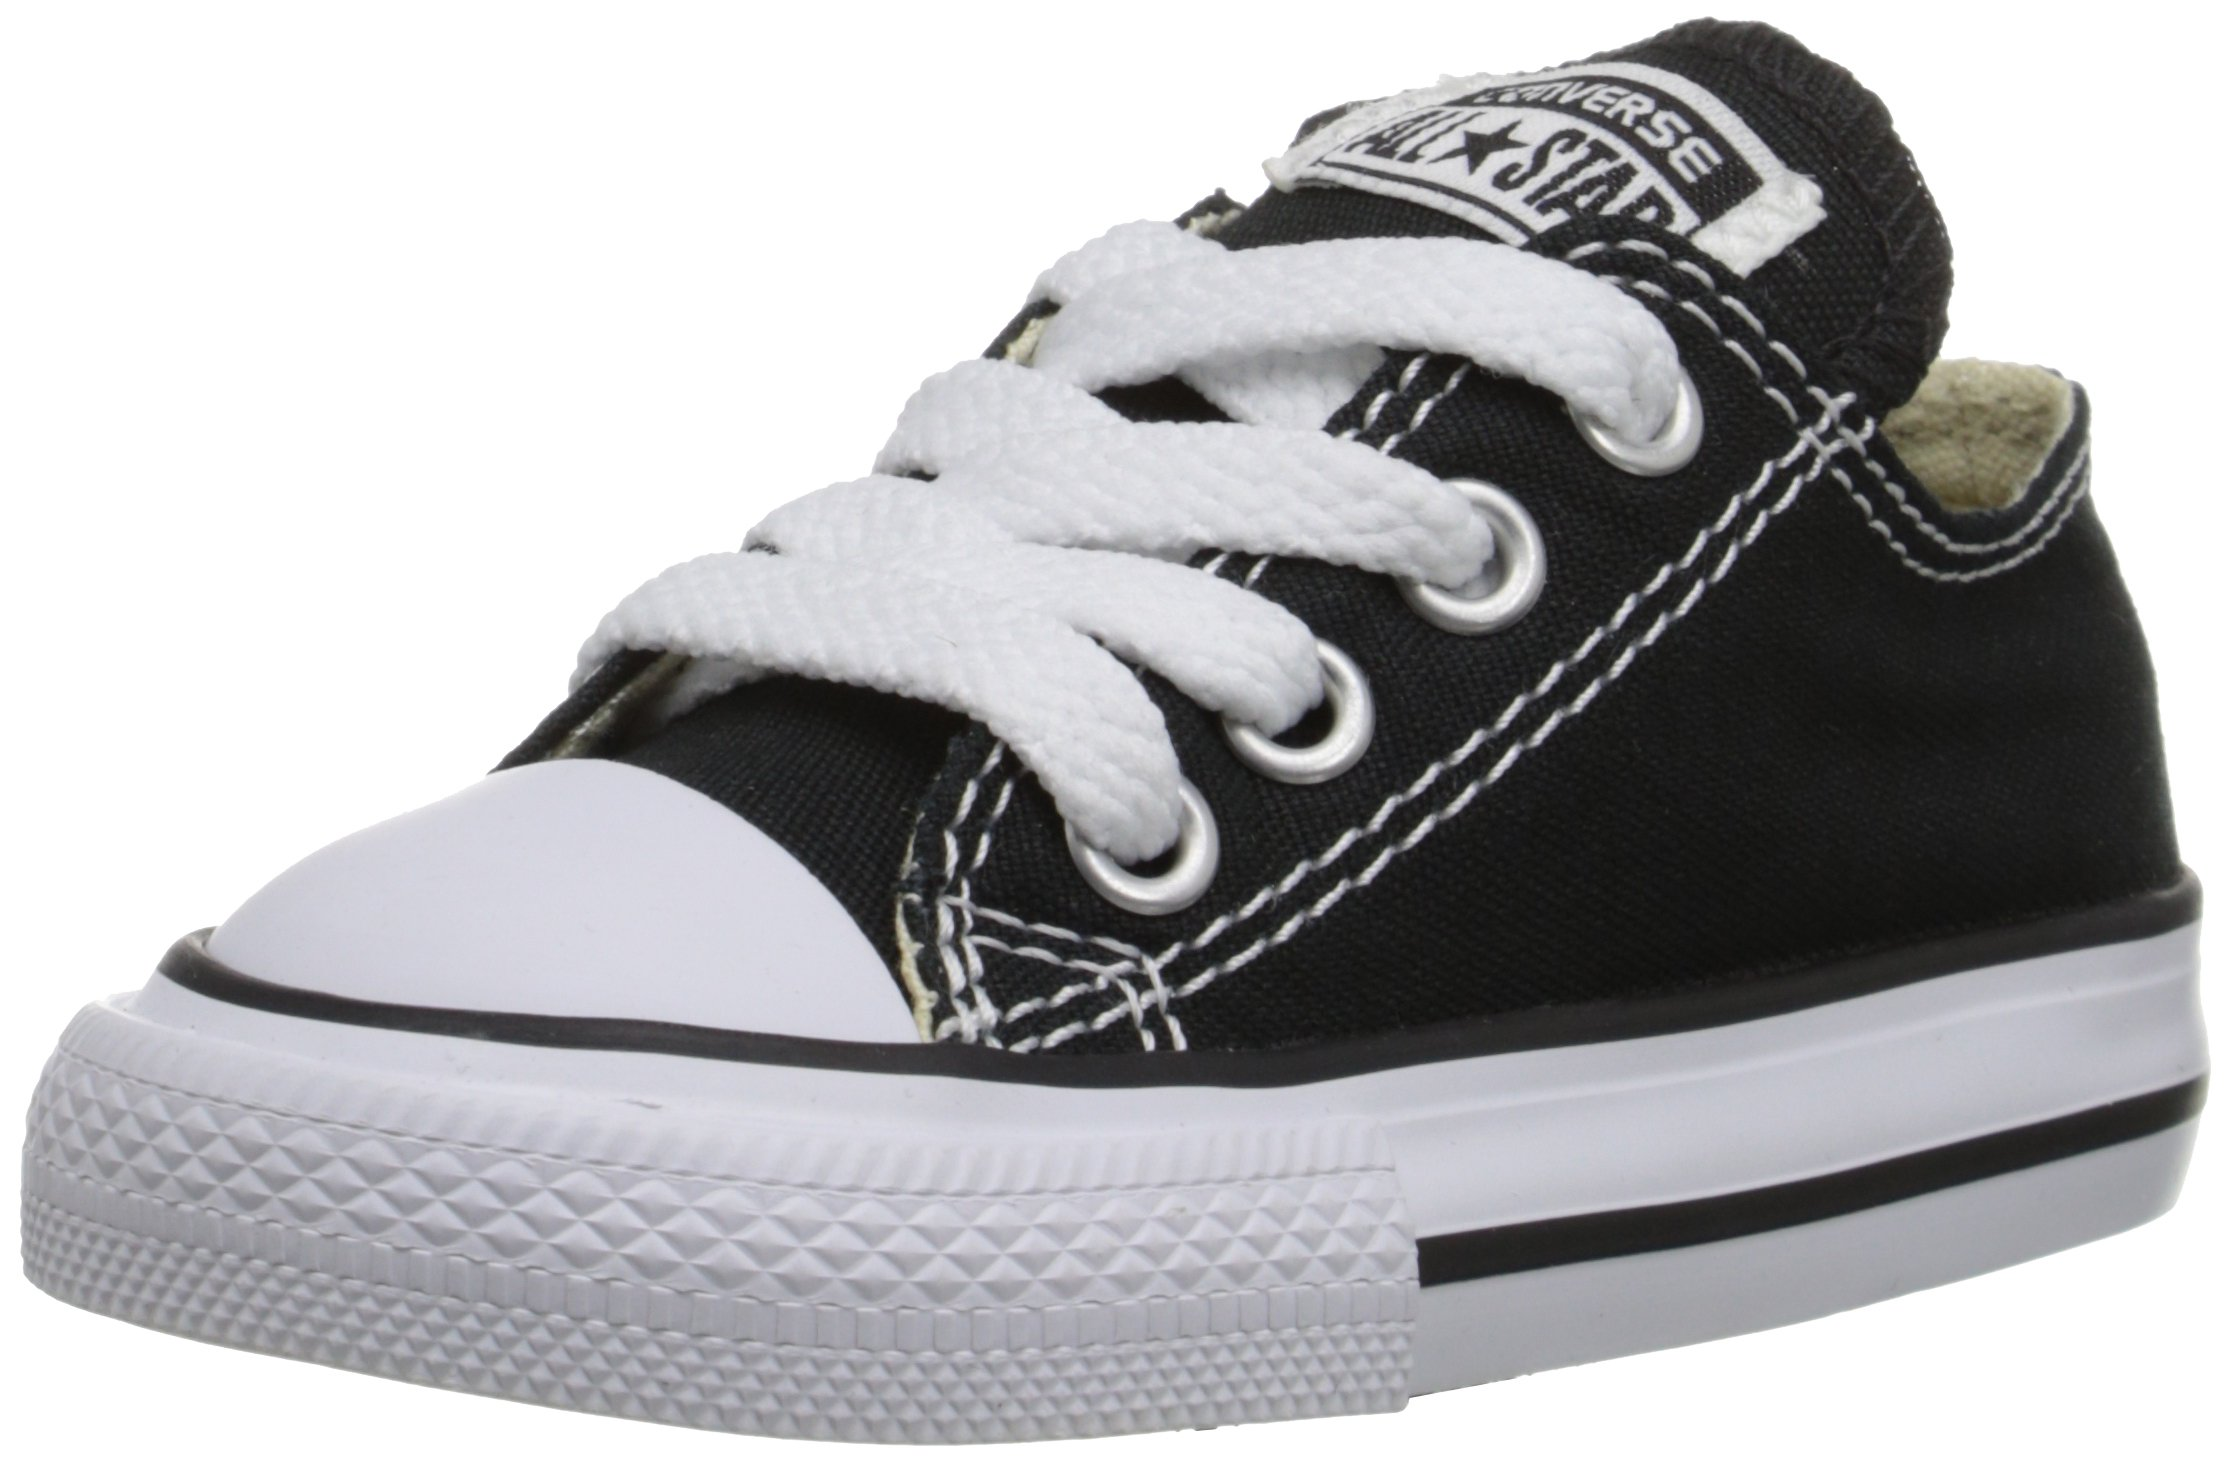 Converse Chuck Taylor All Star OX Shoe - Kids' Black, 10.5